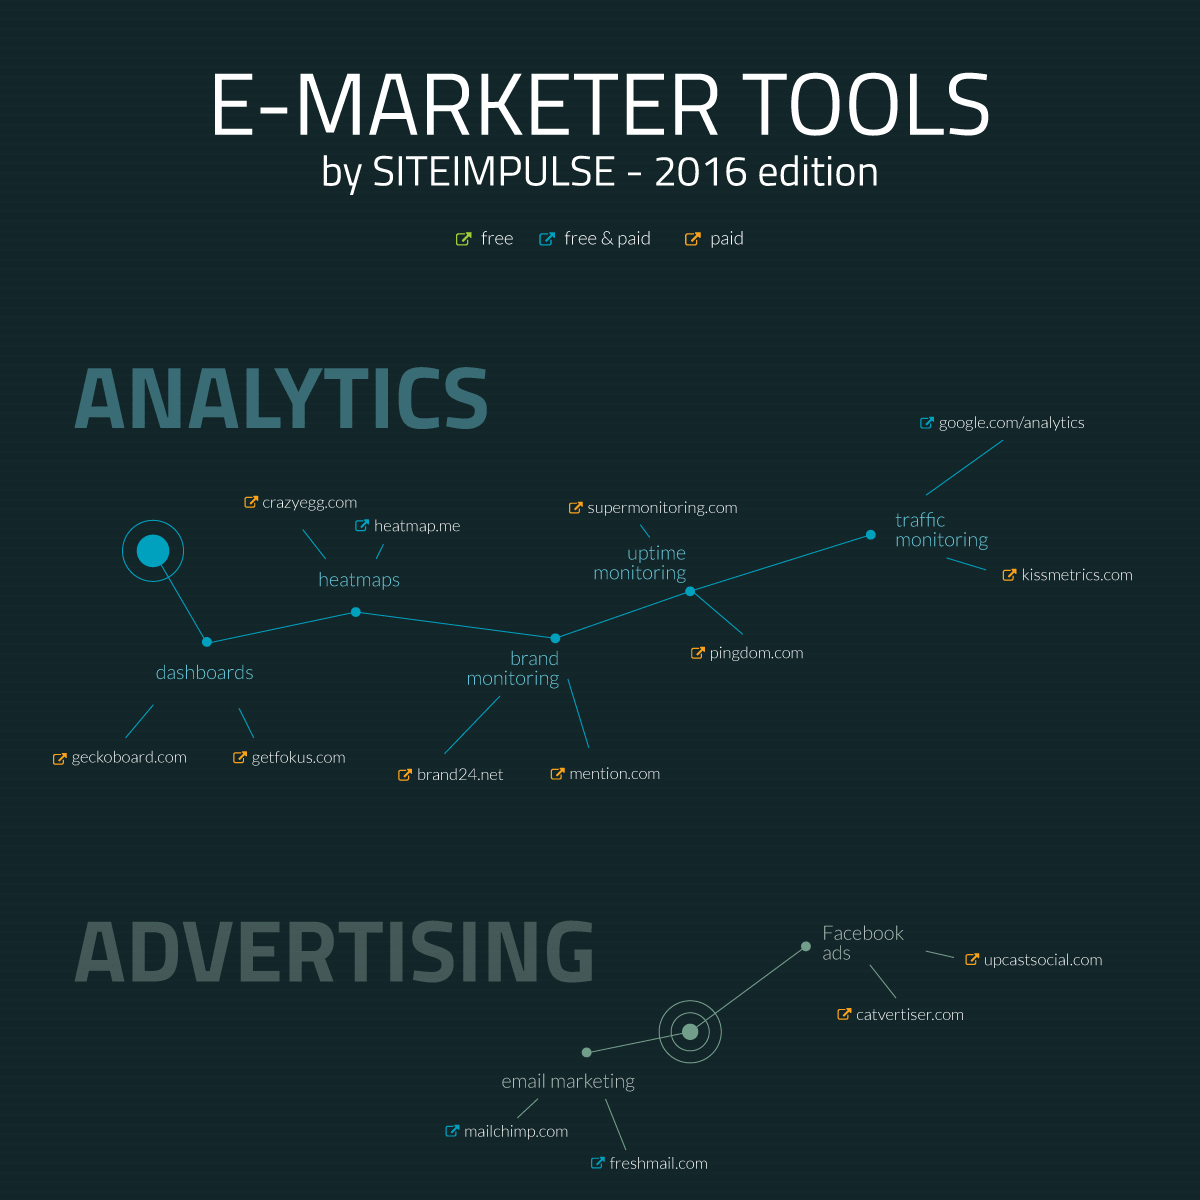 E-Marketer Tools according to SITEIMPULSE